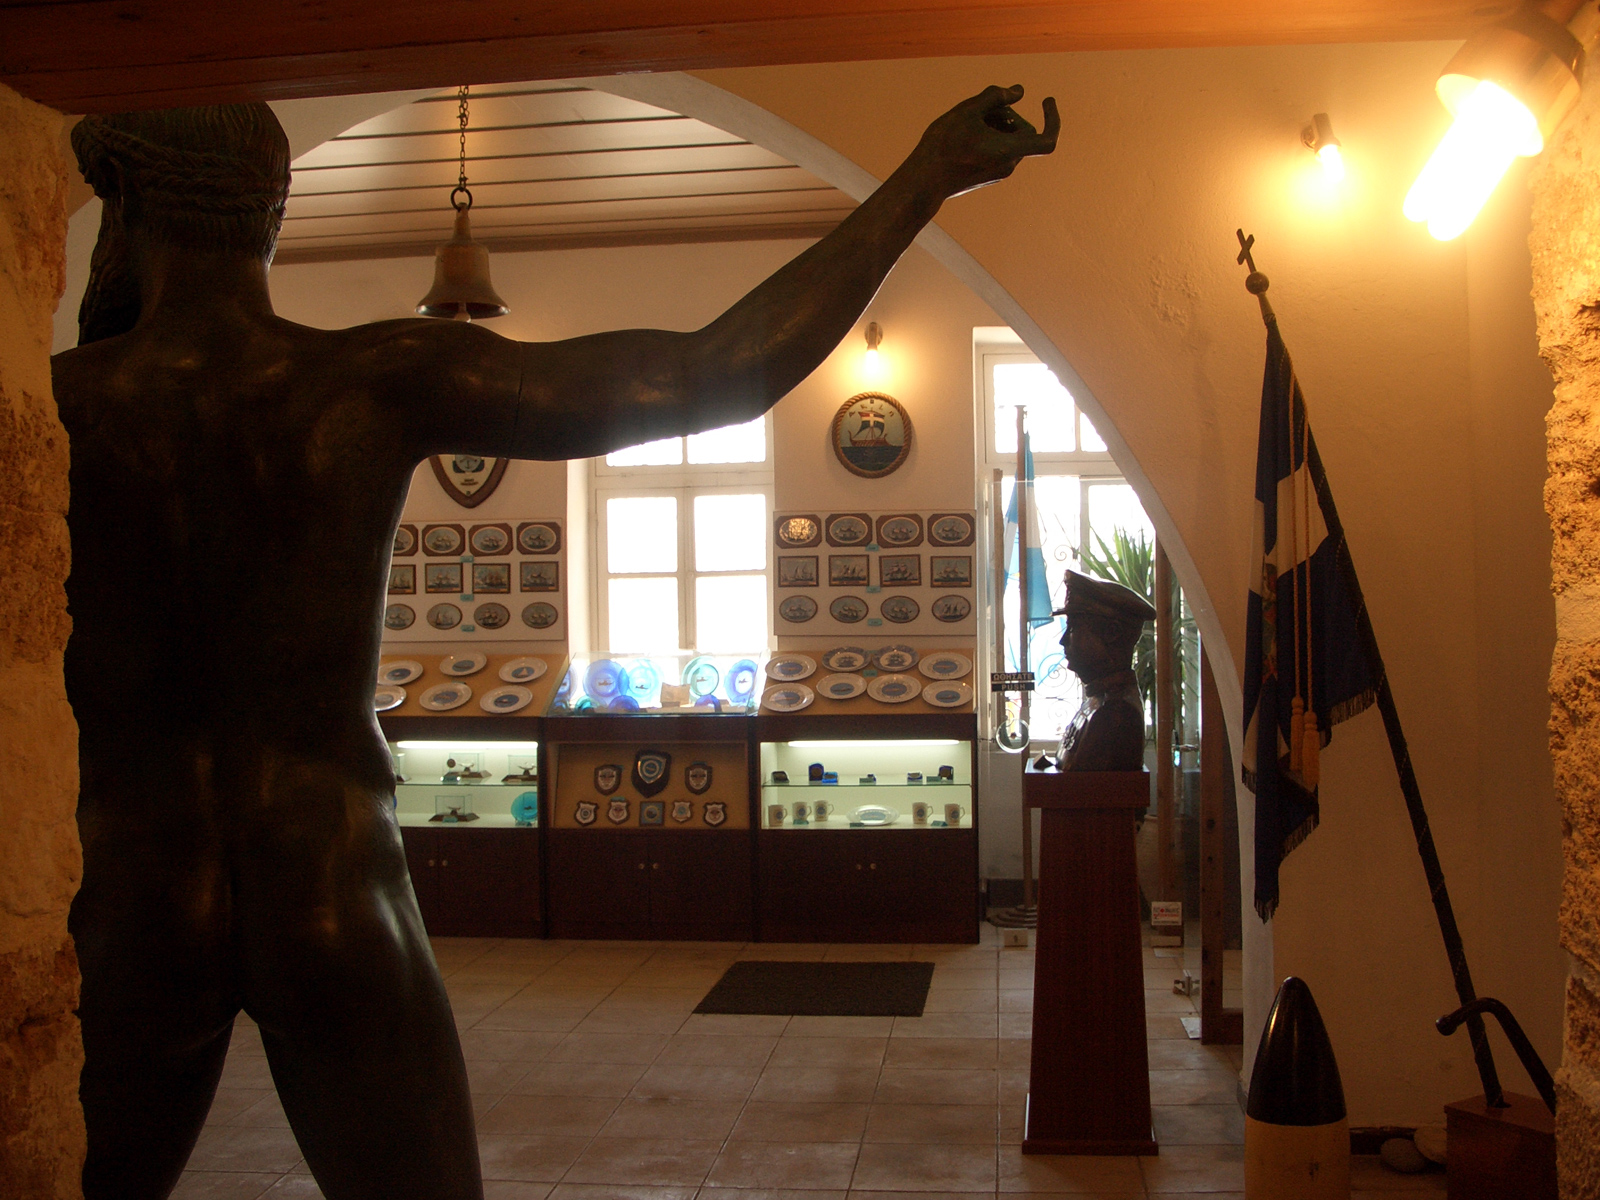 Inside the Maritime Museum of Chania (Picture by Martin Balem/Flickr)